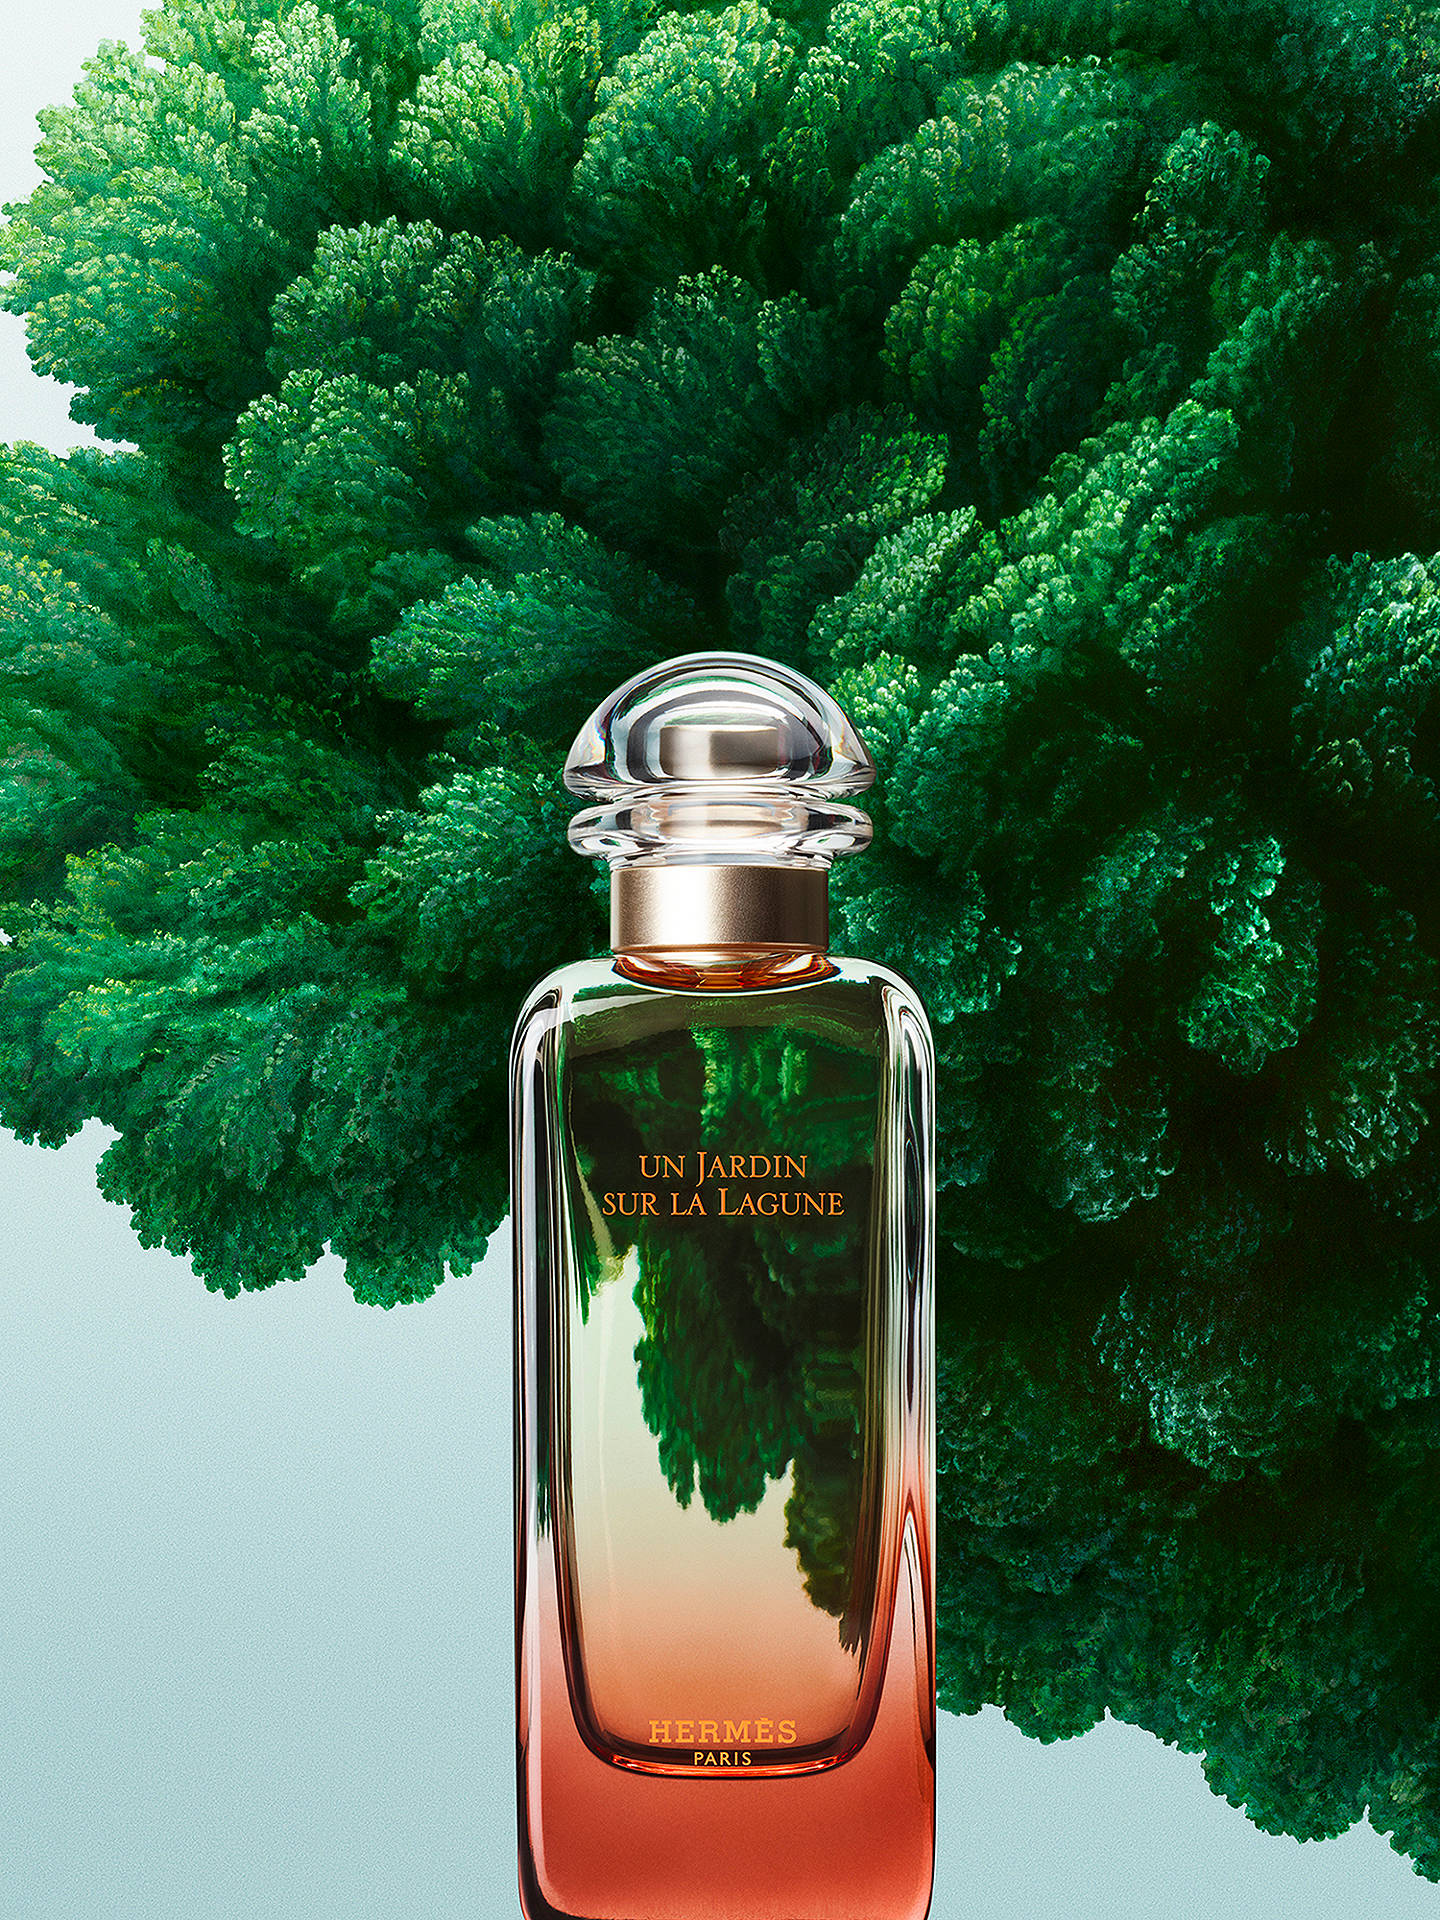 Buy HERMÈS Un Jardin Sur La Lagune Eau de Toilette, 50ml Online at johnlewis.com